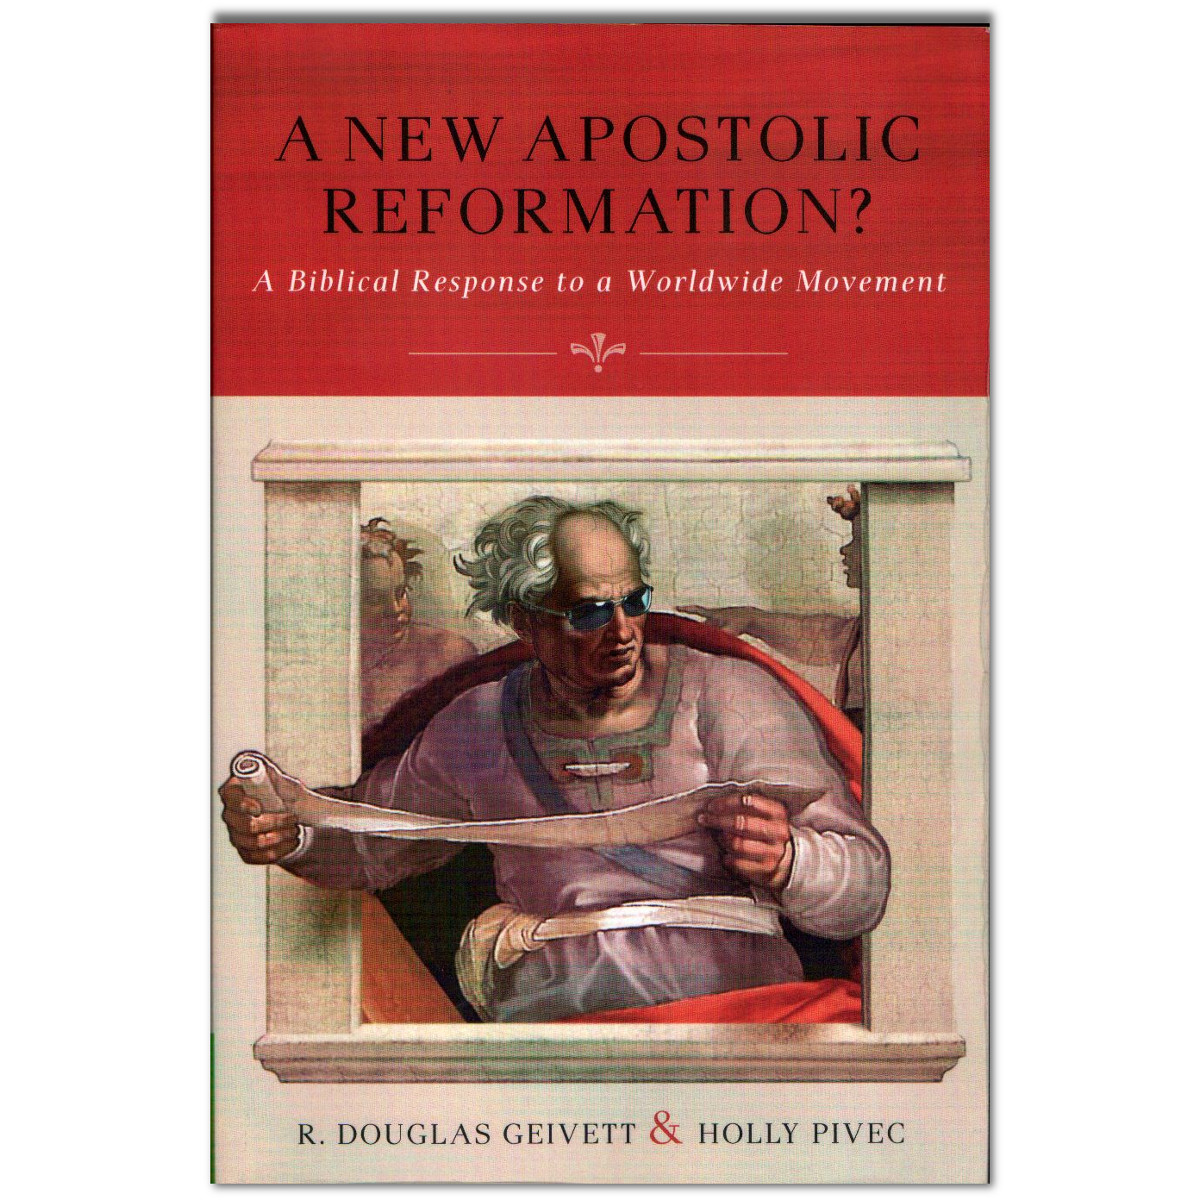 Non-Apostolic Deformation Debunked: A New Apostolic Reformation? Reviewed